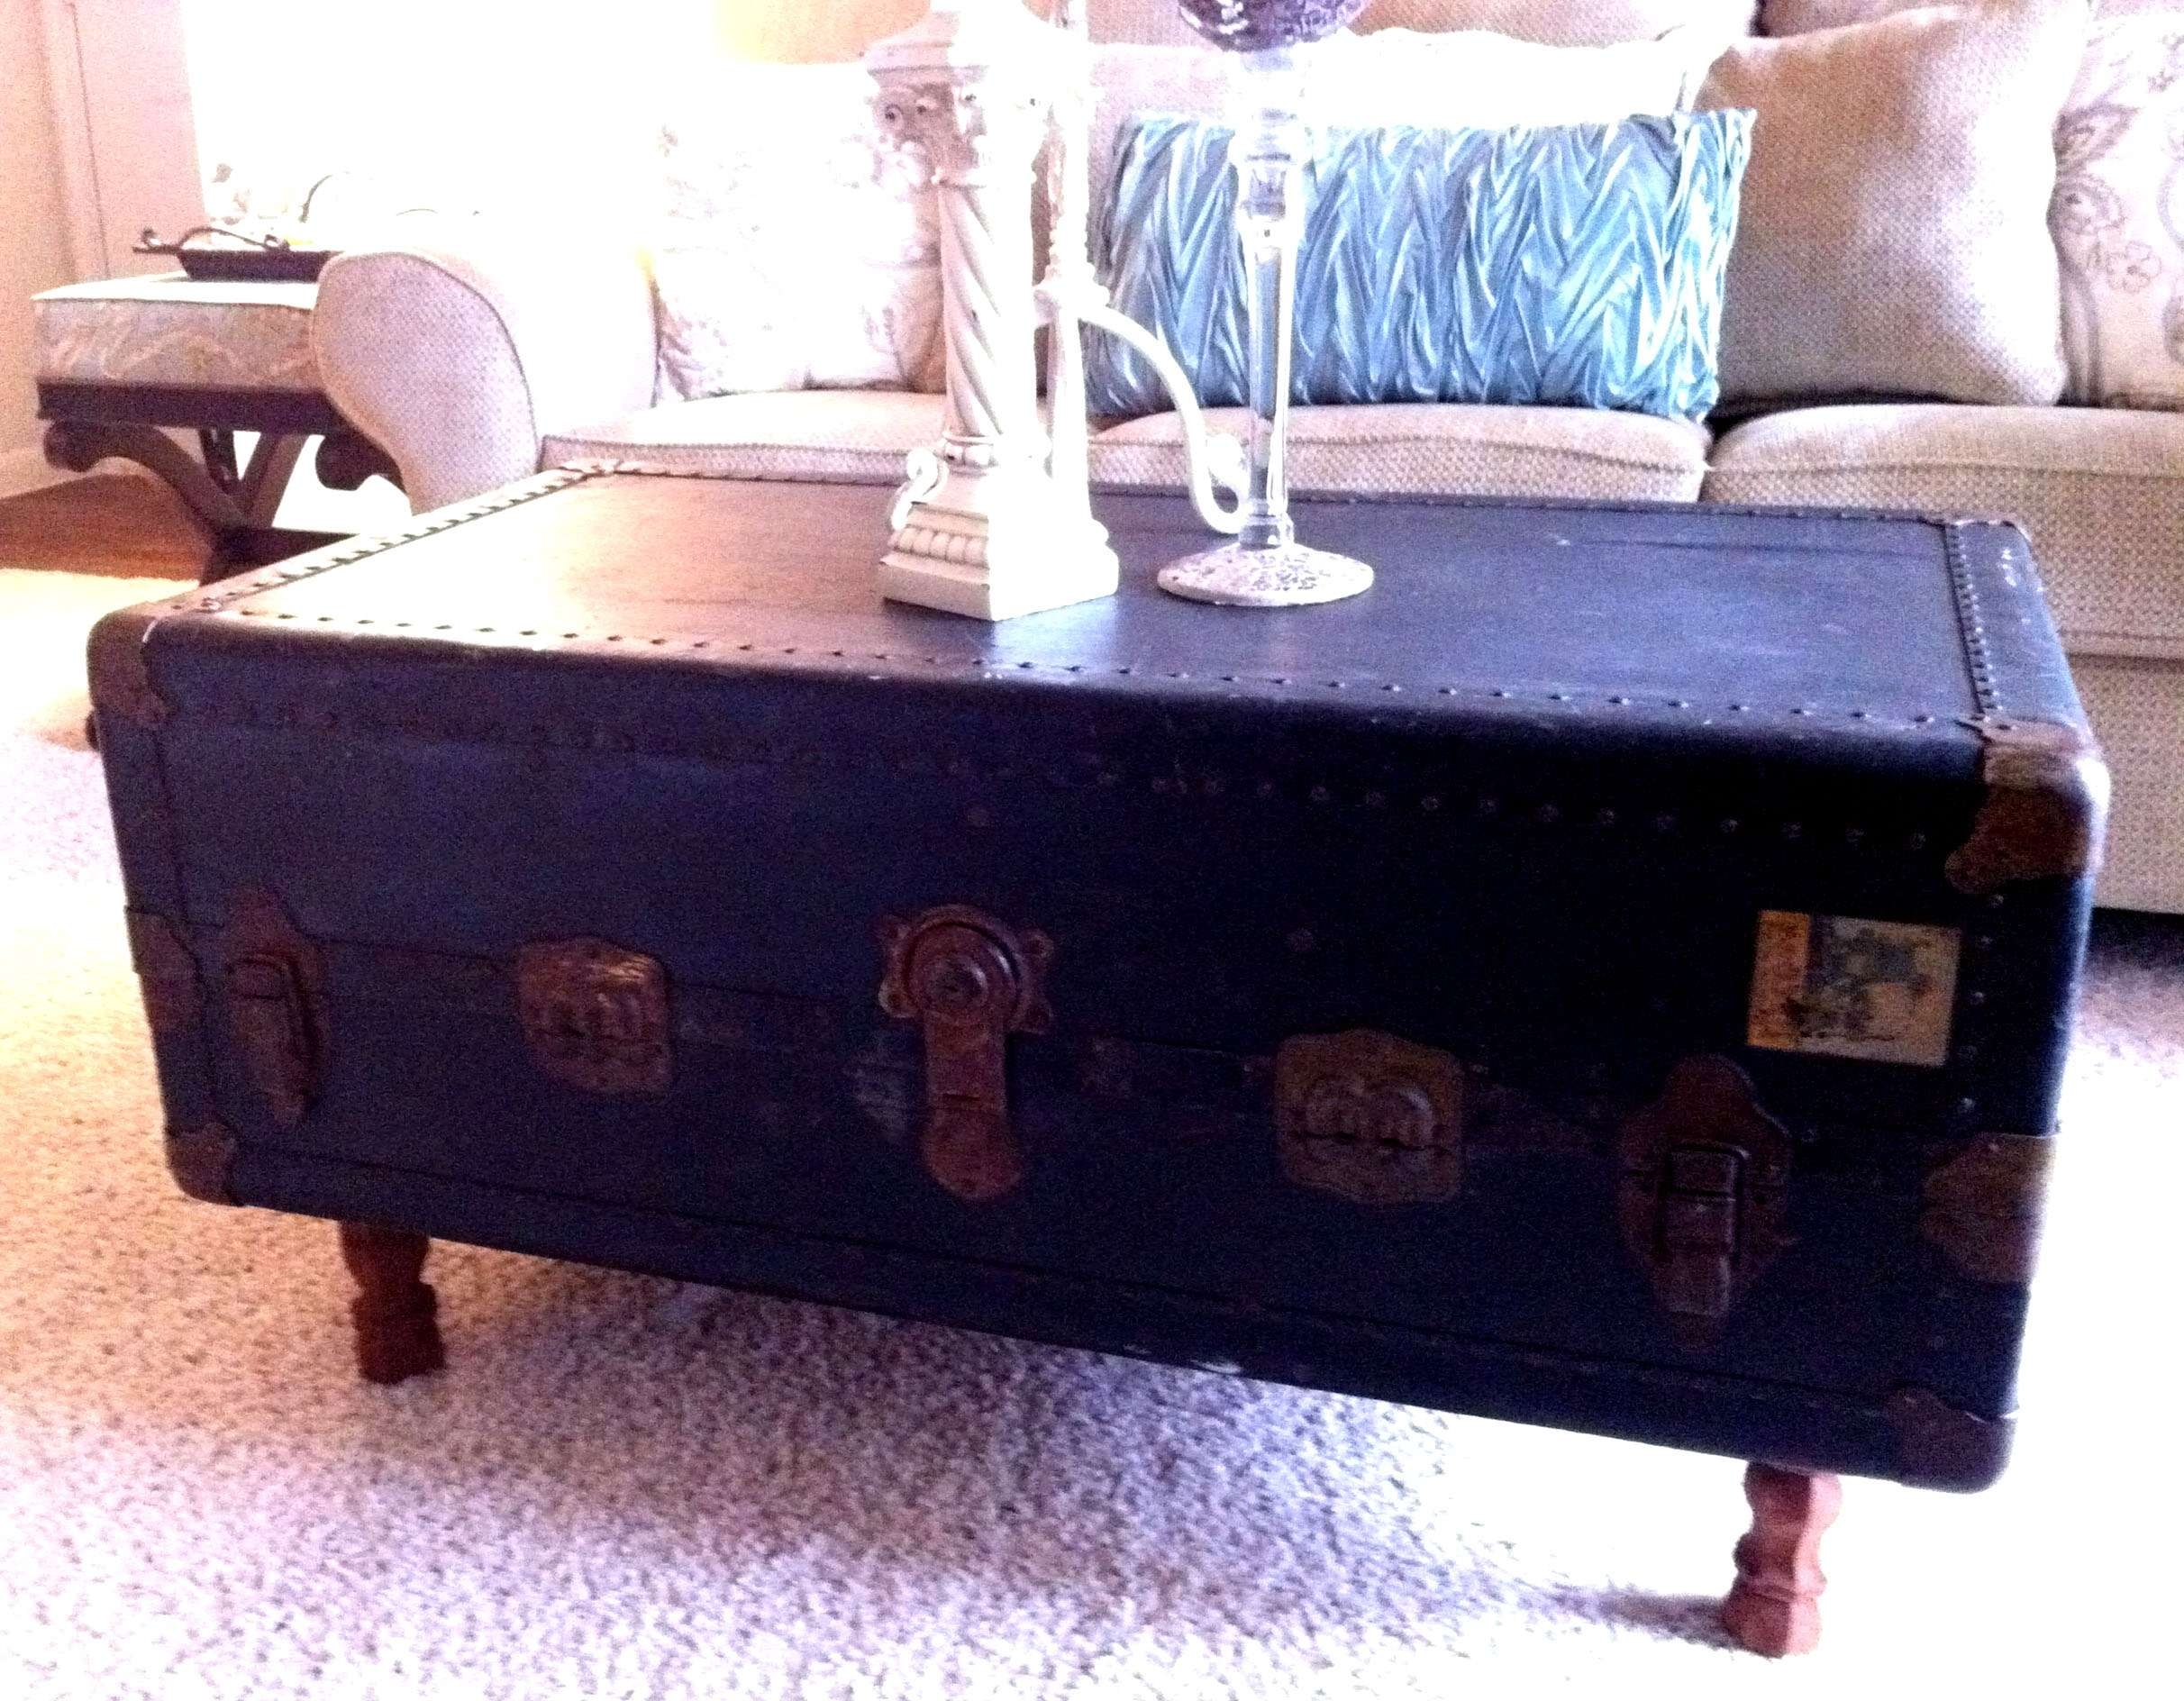 Steamer Trunk Coffee Table: Repurposing Old Stuff (View 15 of 20)